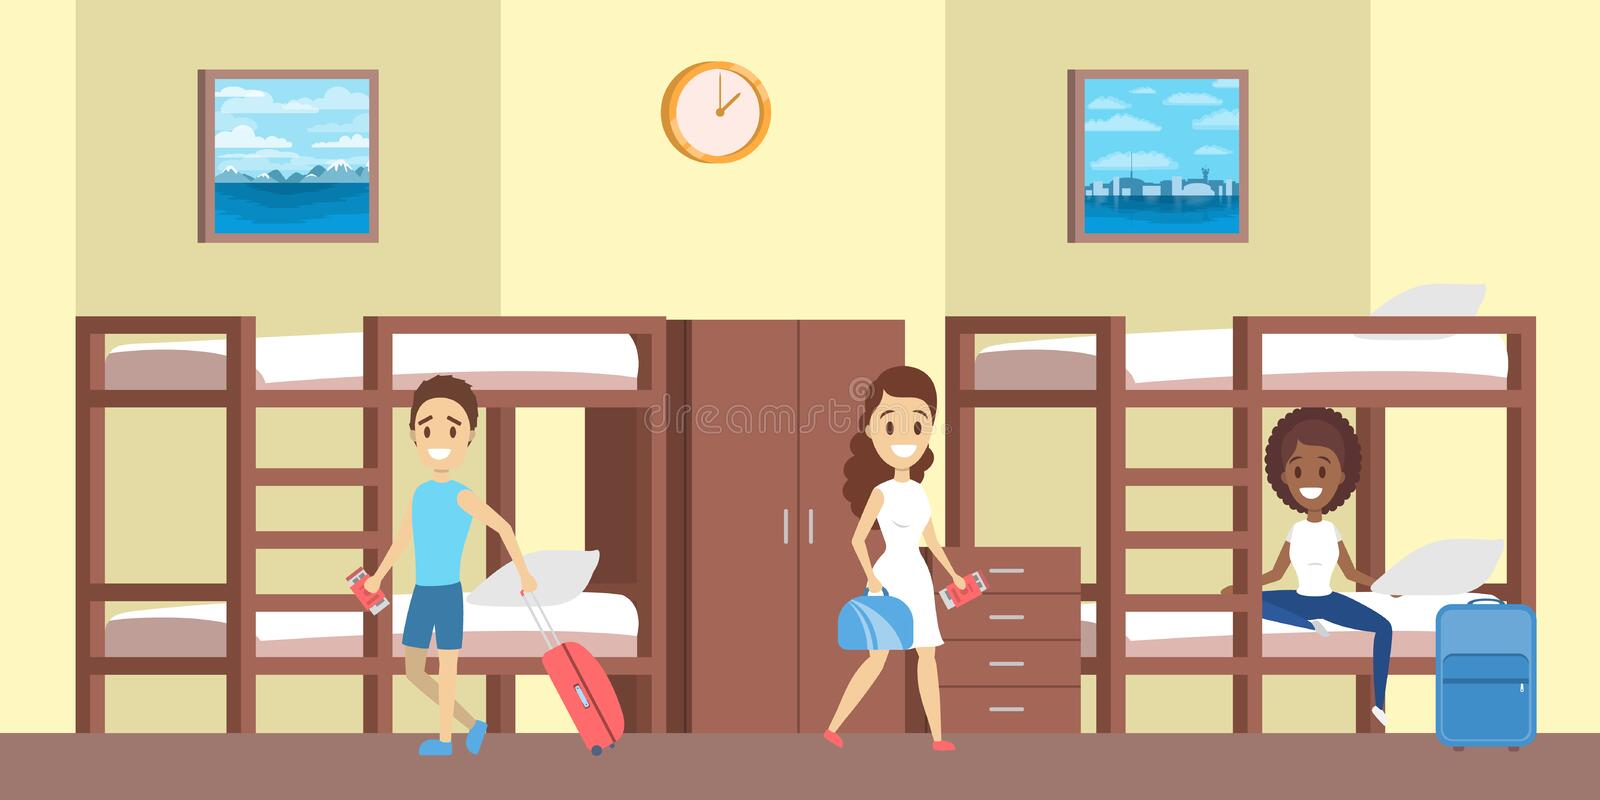 Hostel room interior with people inside illustration. Hostel room interior with people inside. People sitting on the bed with baggage. Cheap accomodation. Flat royalty free illustration